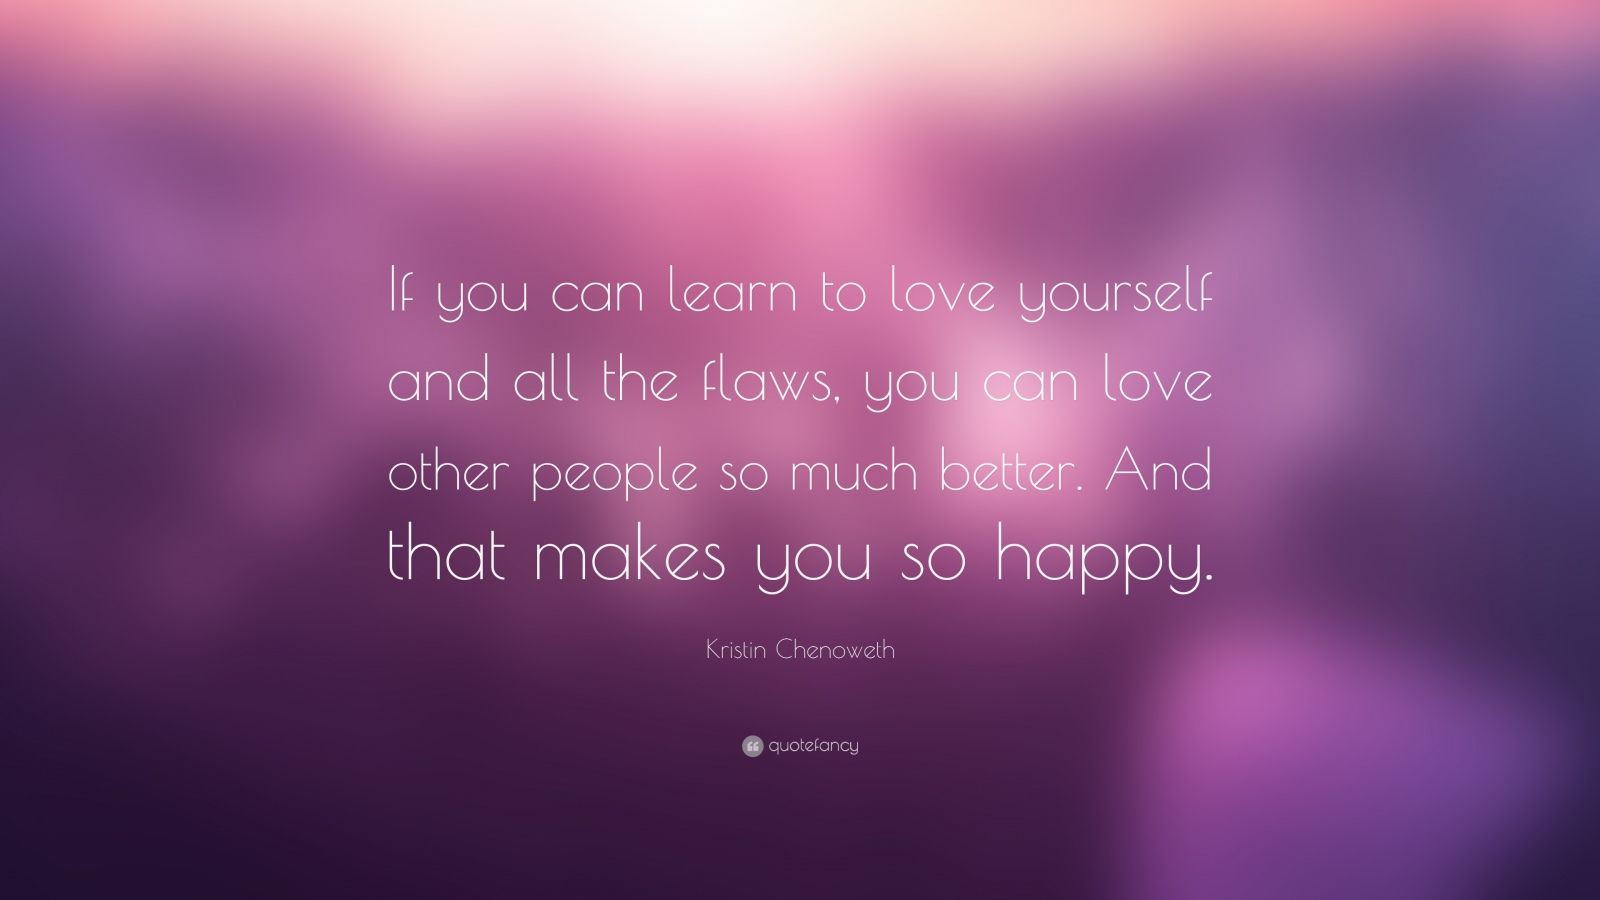 35405 Kristin Chenoweth Quote If you can learn to love yourself and all